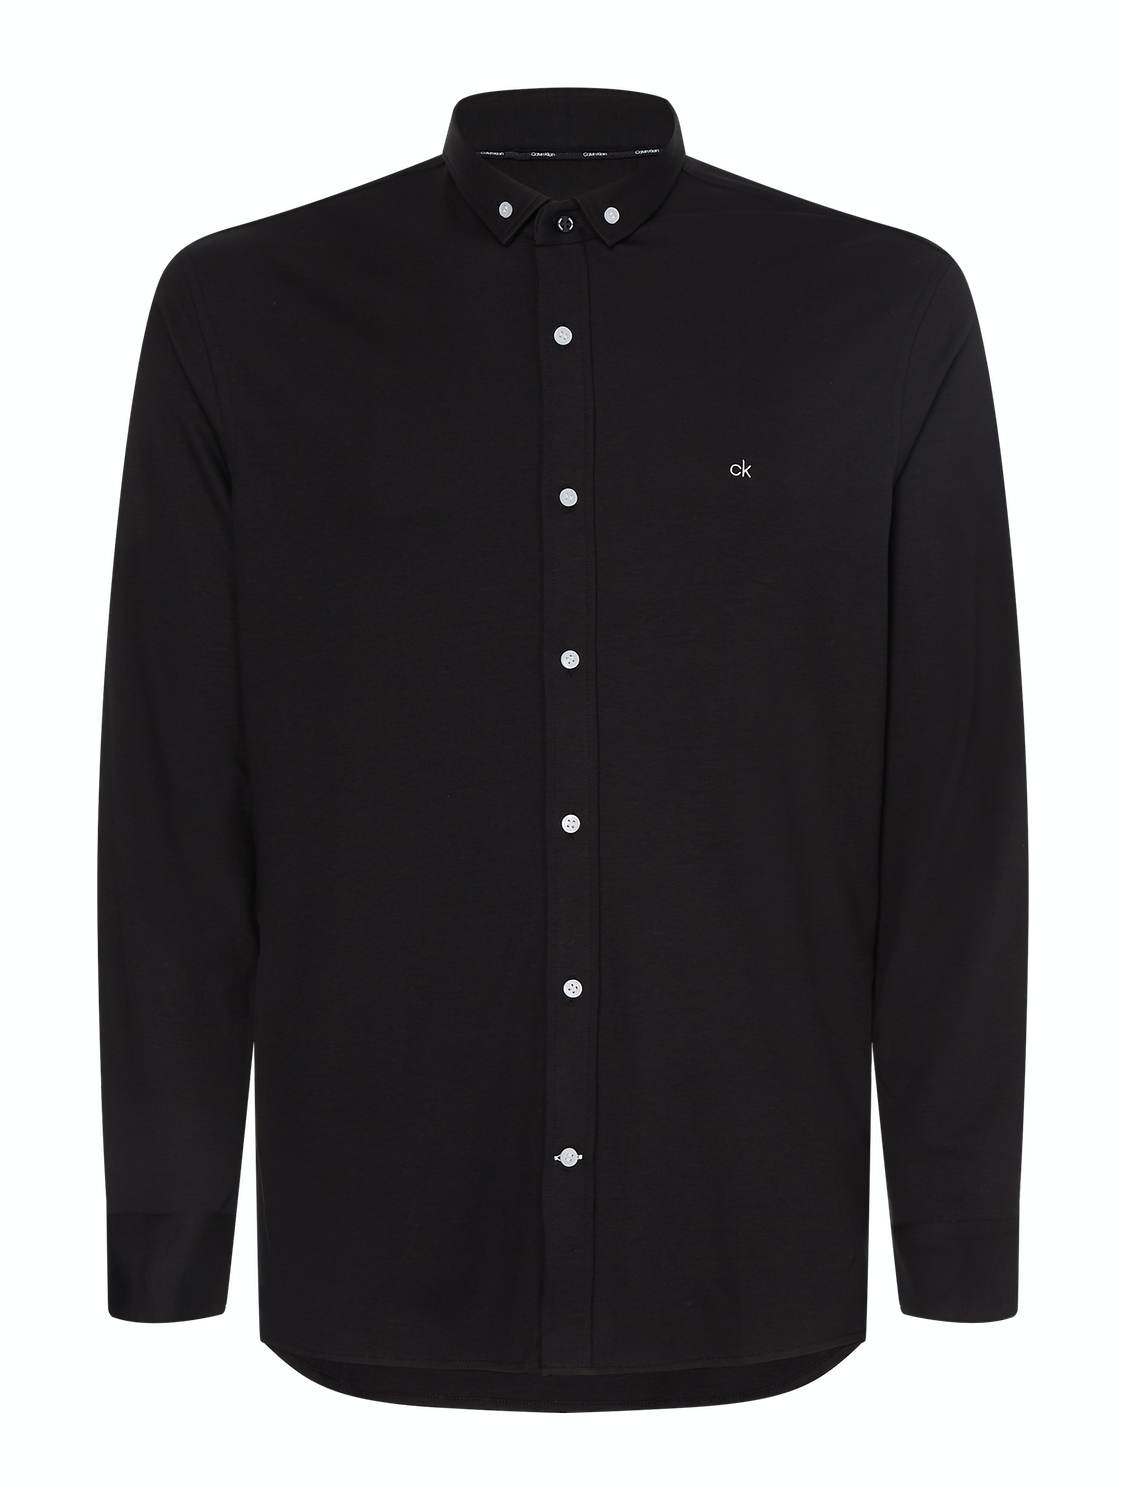 CALVIN KLEIN - KNITTED SHIRT BLACK | GATE 36 Hobro